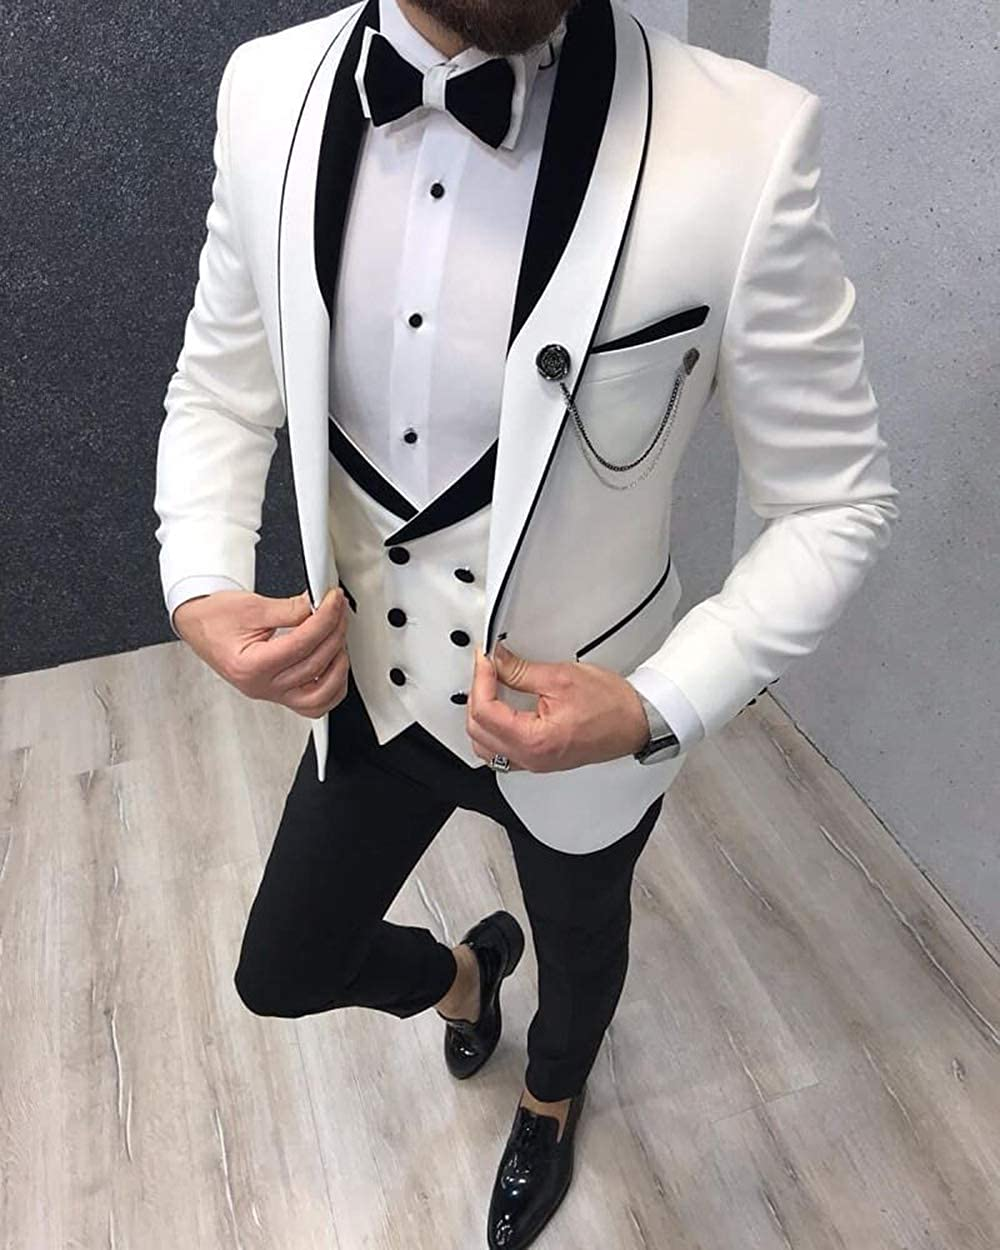 Aesido Men's Casual Suits Slim Fit 3 Piece Prom Tuxedos Shawl Lapel Double Breasted Vest Blazer Pants Grooms Wedding Party